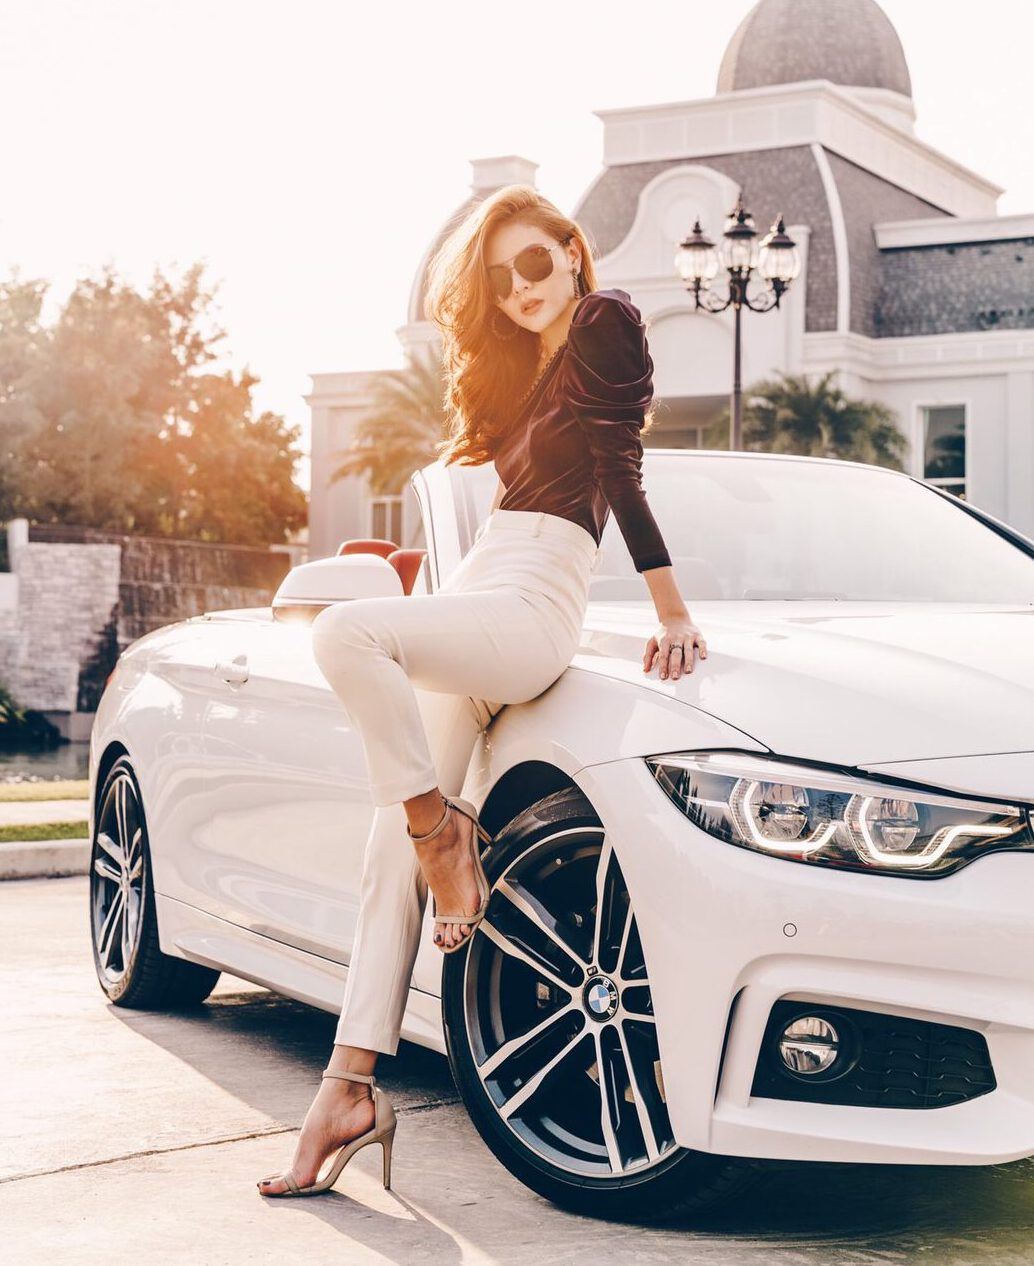 An attractive girl renting convertible car with Prime Cars Rental